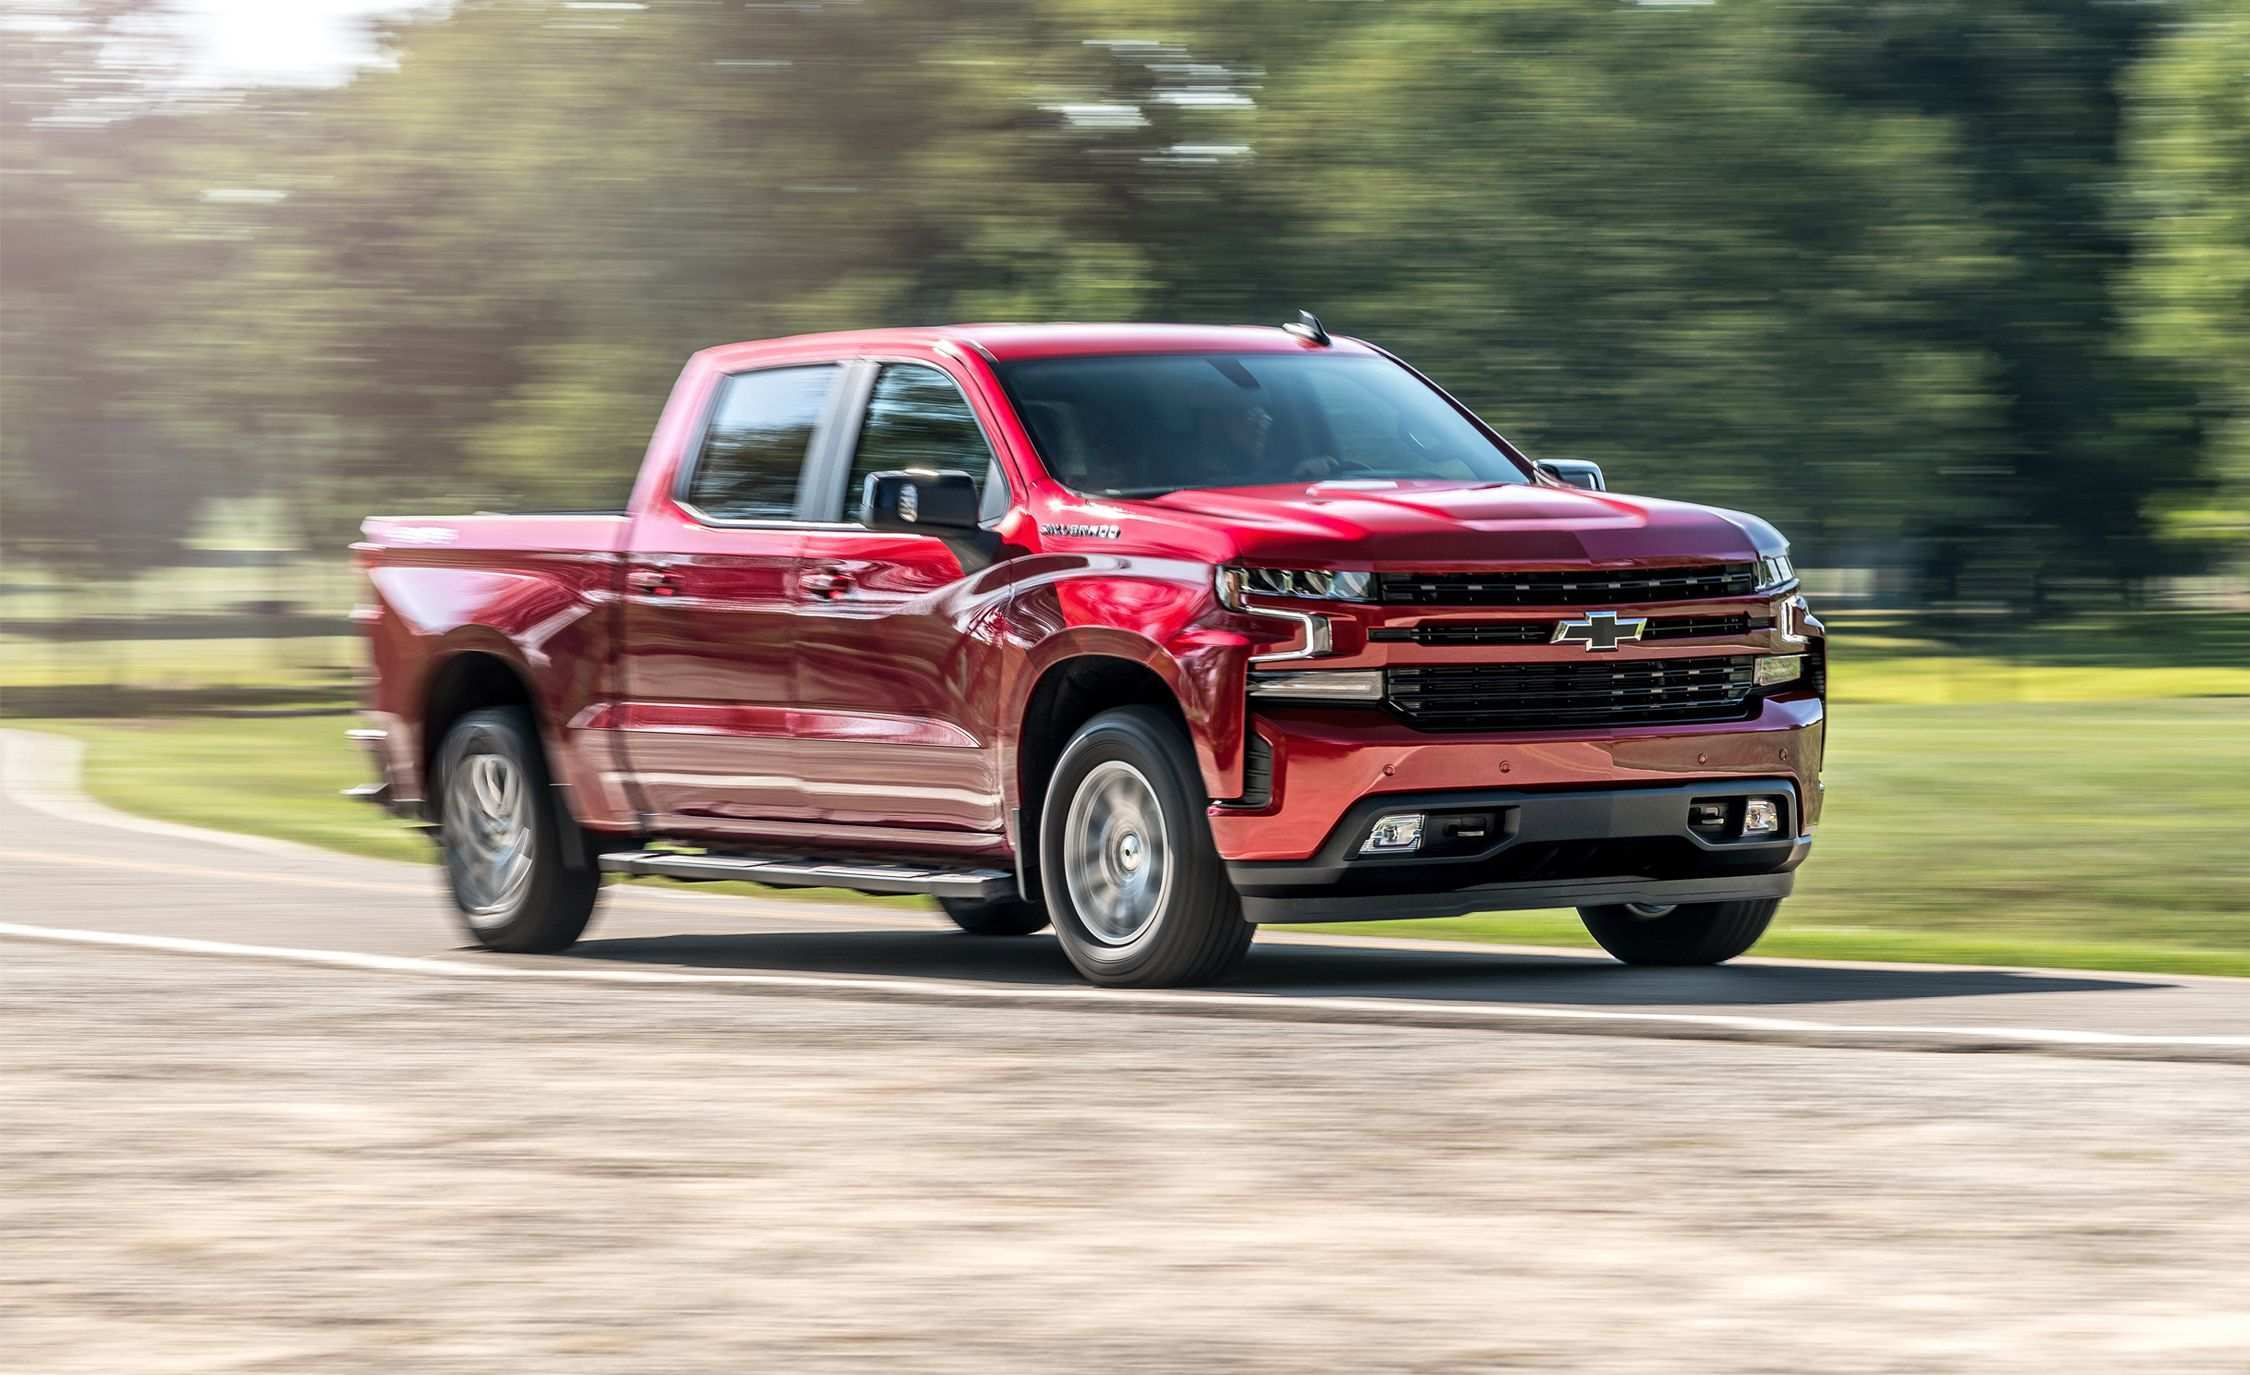 76 Gallery of 2019 Chevrolet Silverado 1500 Review Style by 2019 Chevrolet Silverado 1500 Review